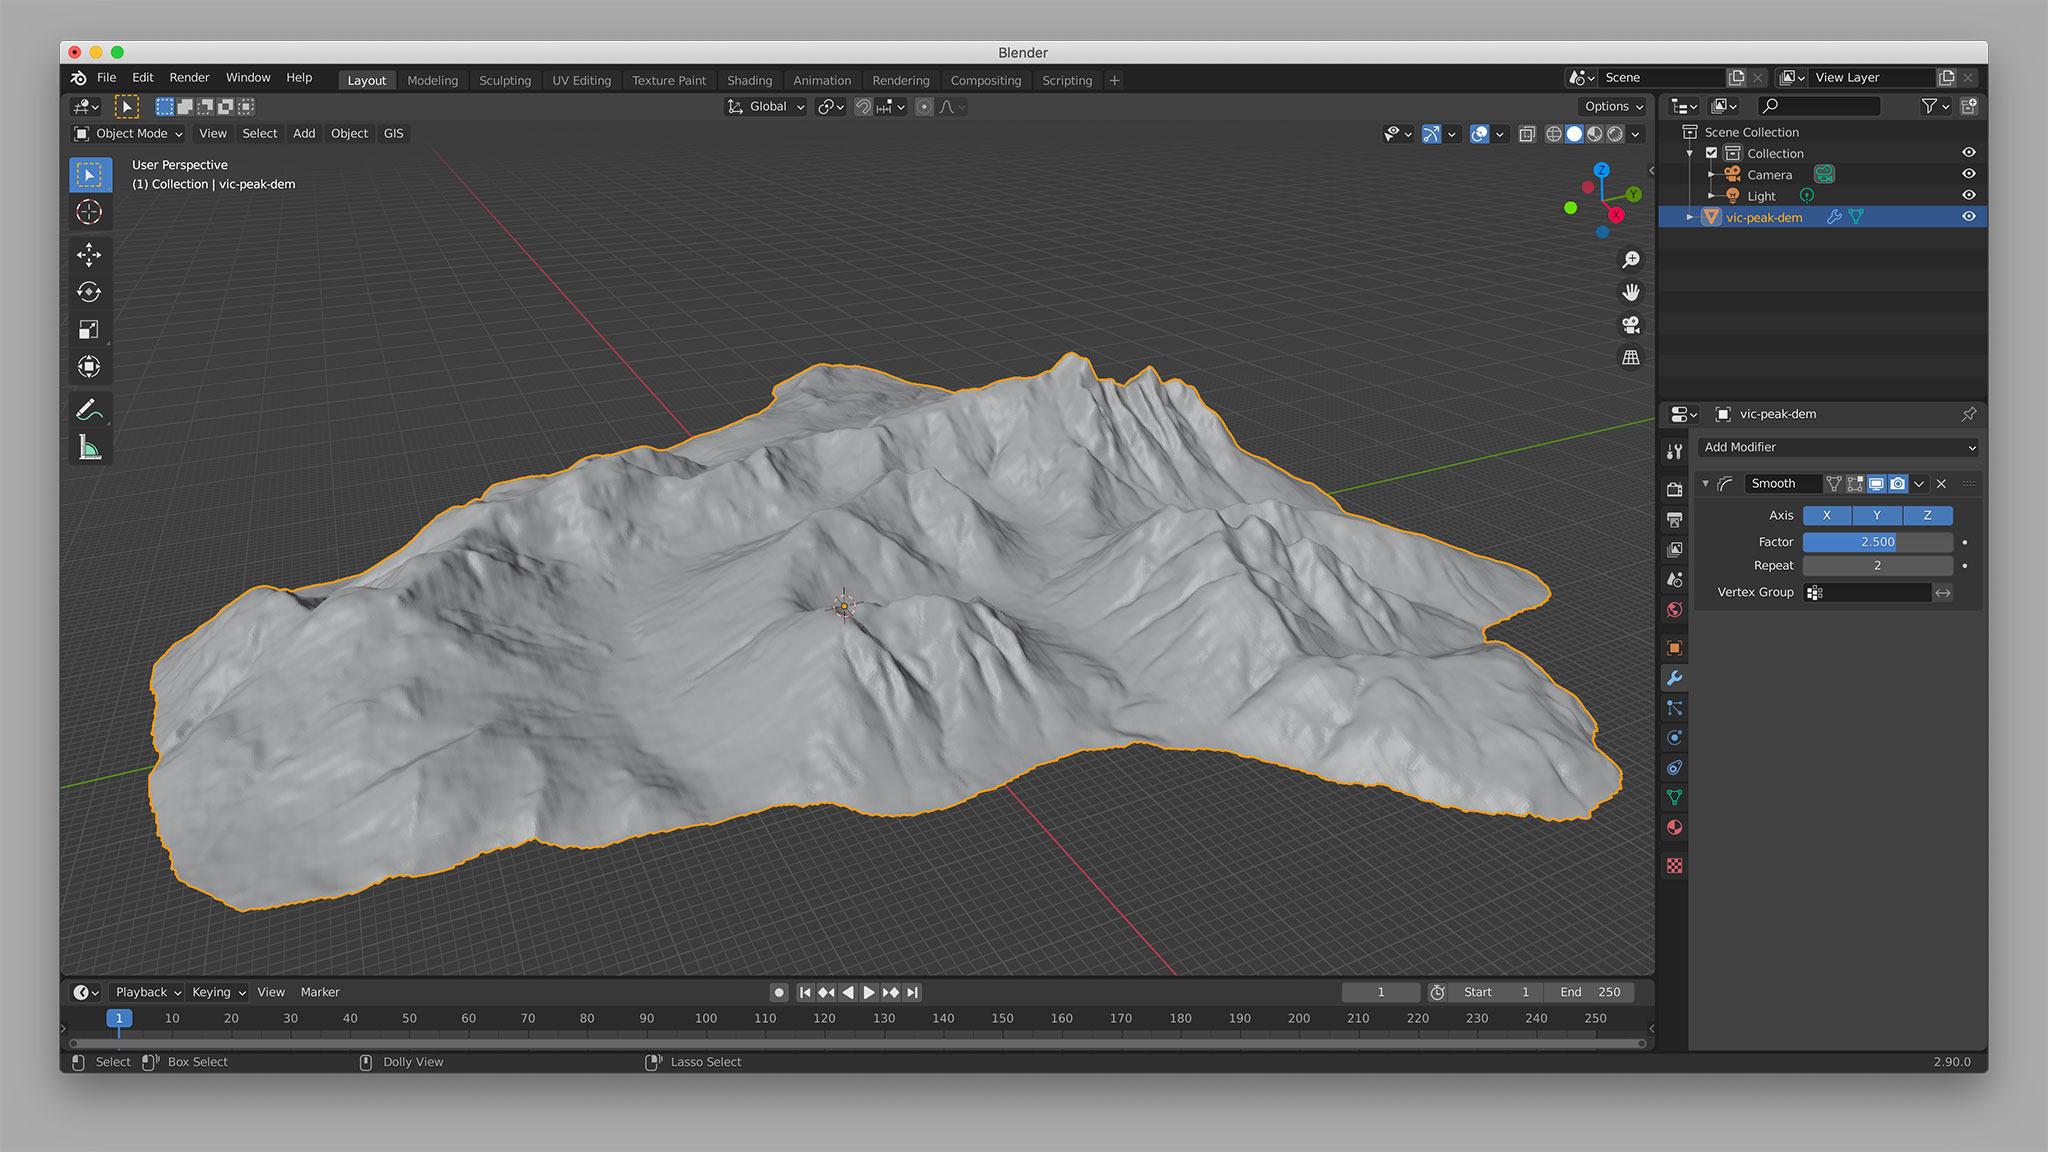 Applying a Smooth modifier in Blender